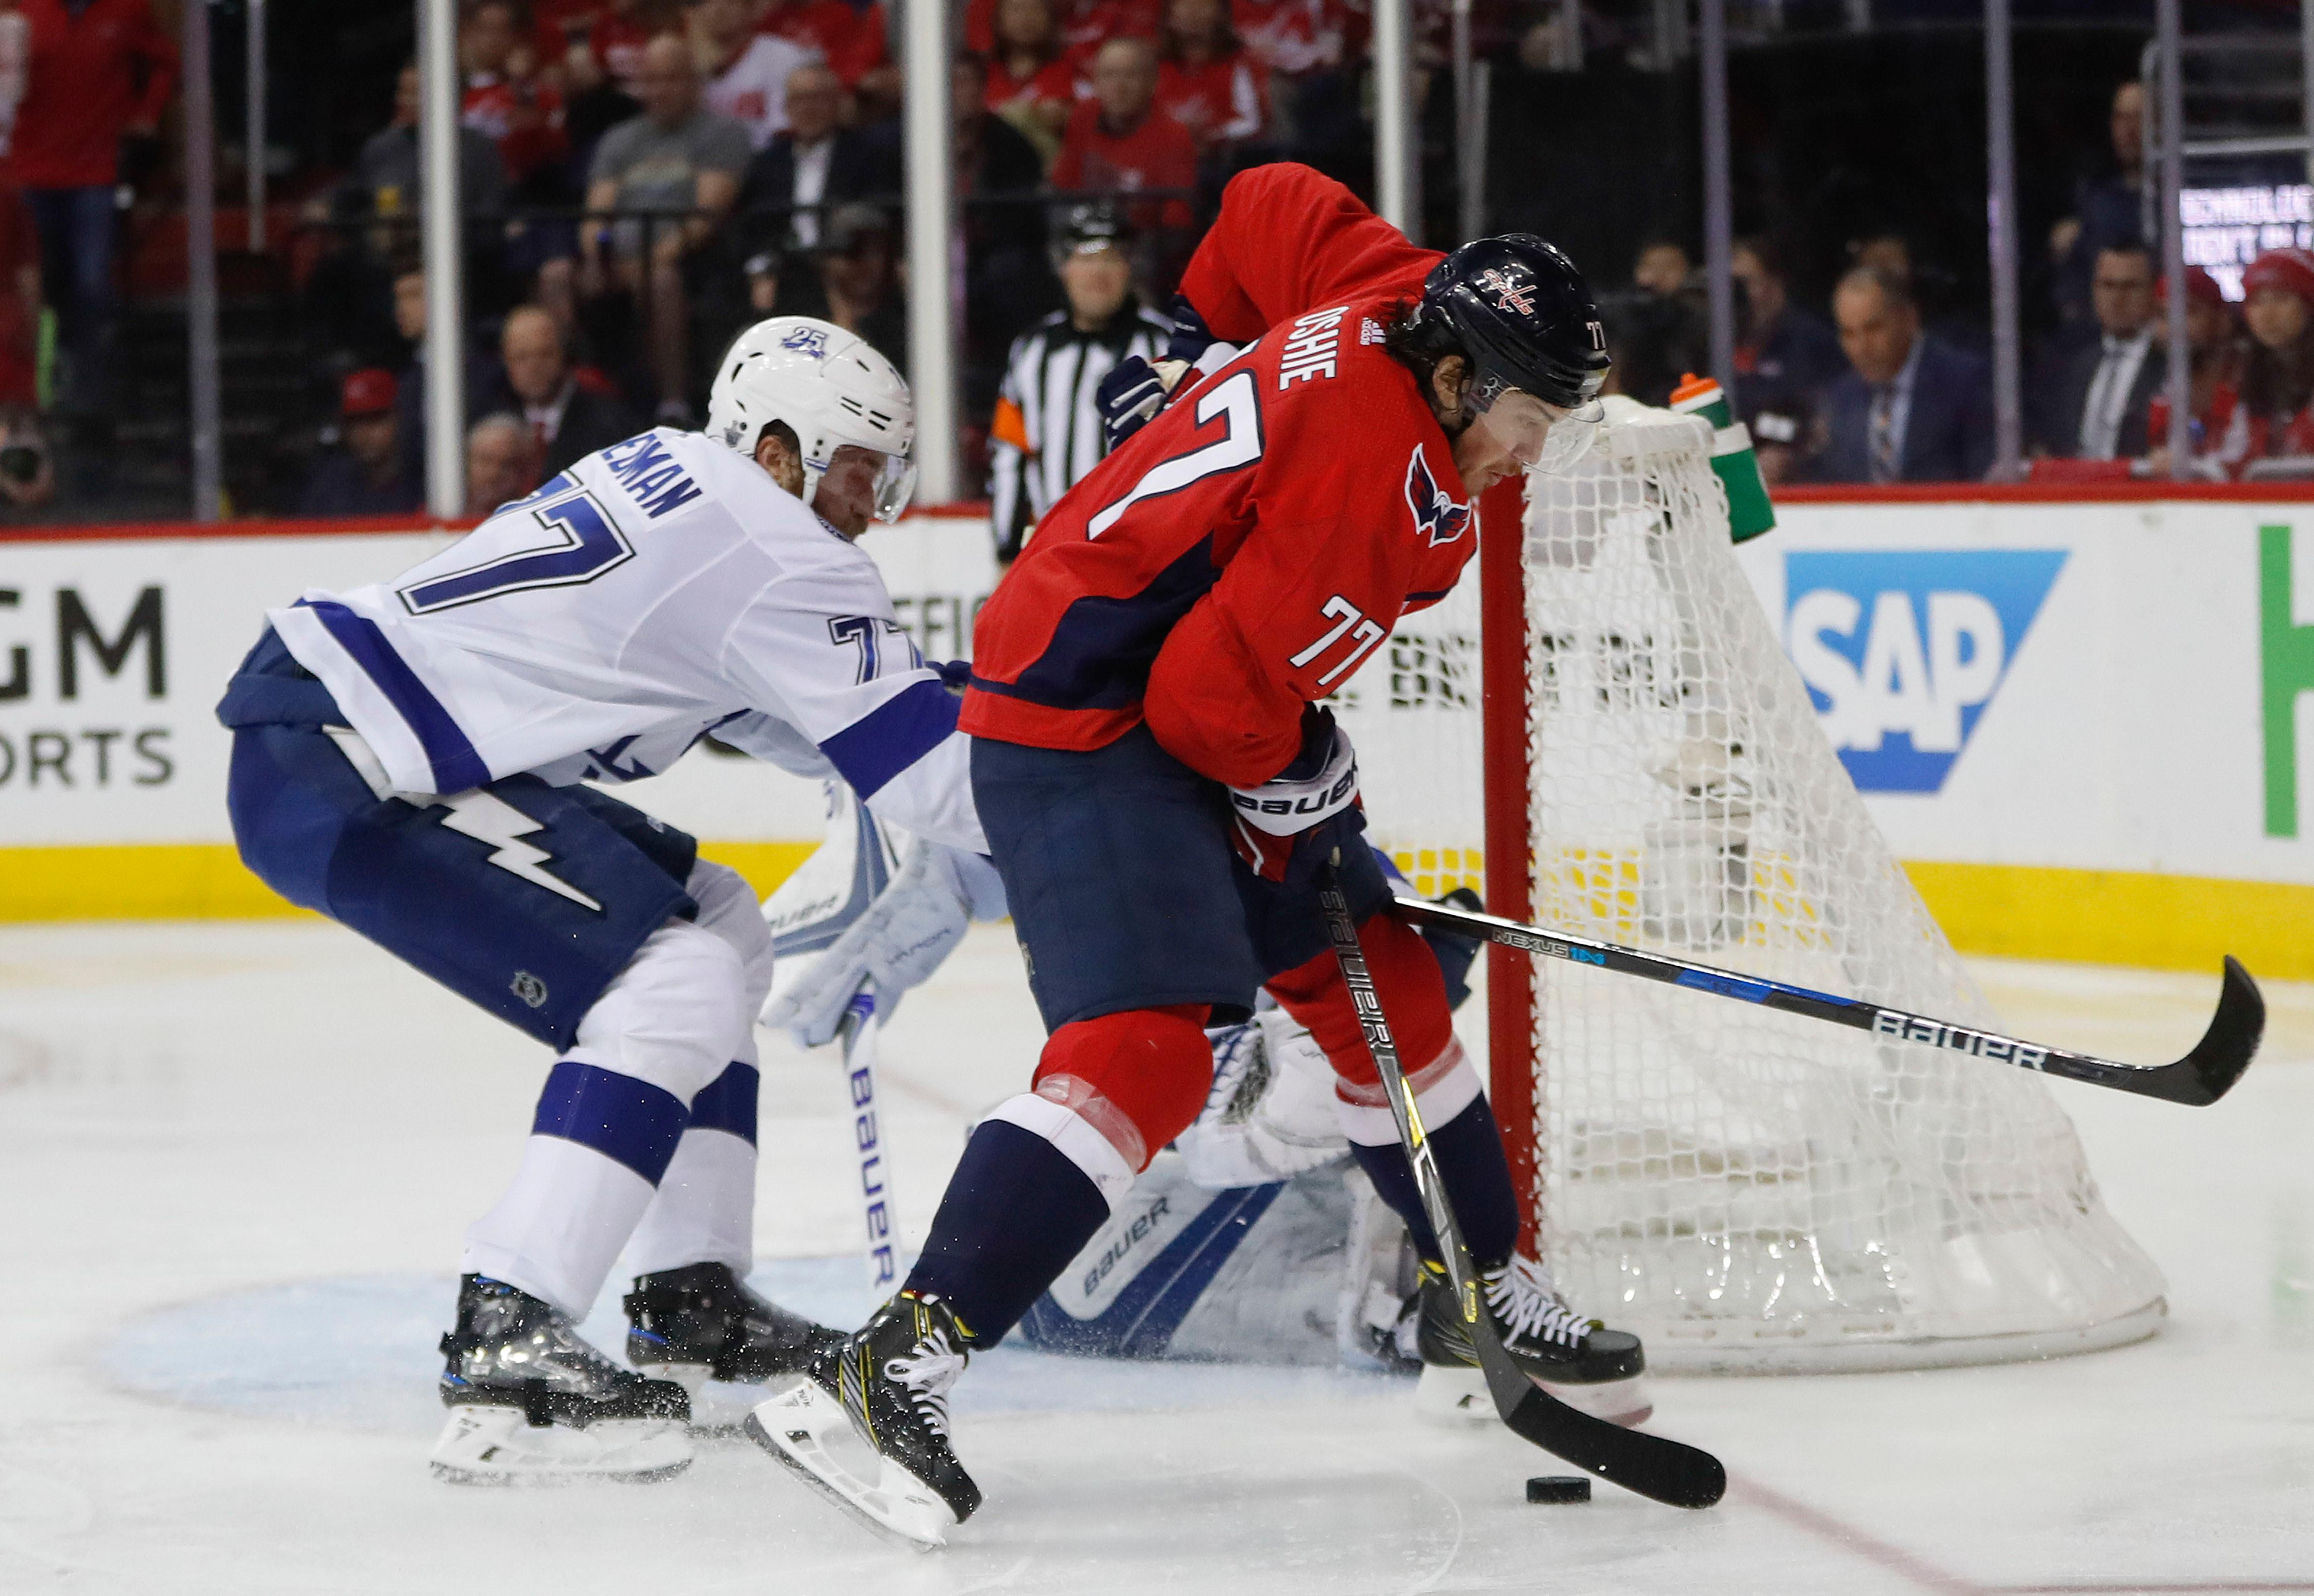 Washington Capitals right wing T.J. Oshie (77) tries to score on Tampa Bay Lightning goaltender Andrei Vasilevskiy (88), from Russia, and Lightning defenseman Victor Hedman (77), from Sweden, during the second period of Game 6 of the NHL Eastern Conference finals hockey playoff series, Monday, May 21, 2018, in Washington. (AP Photo/Pablo Martinez Monsivais)